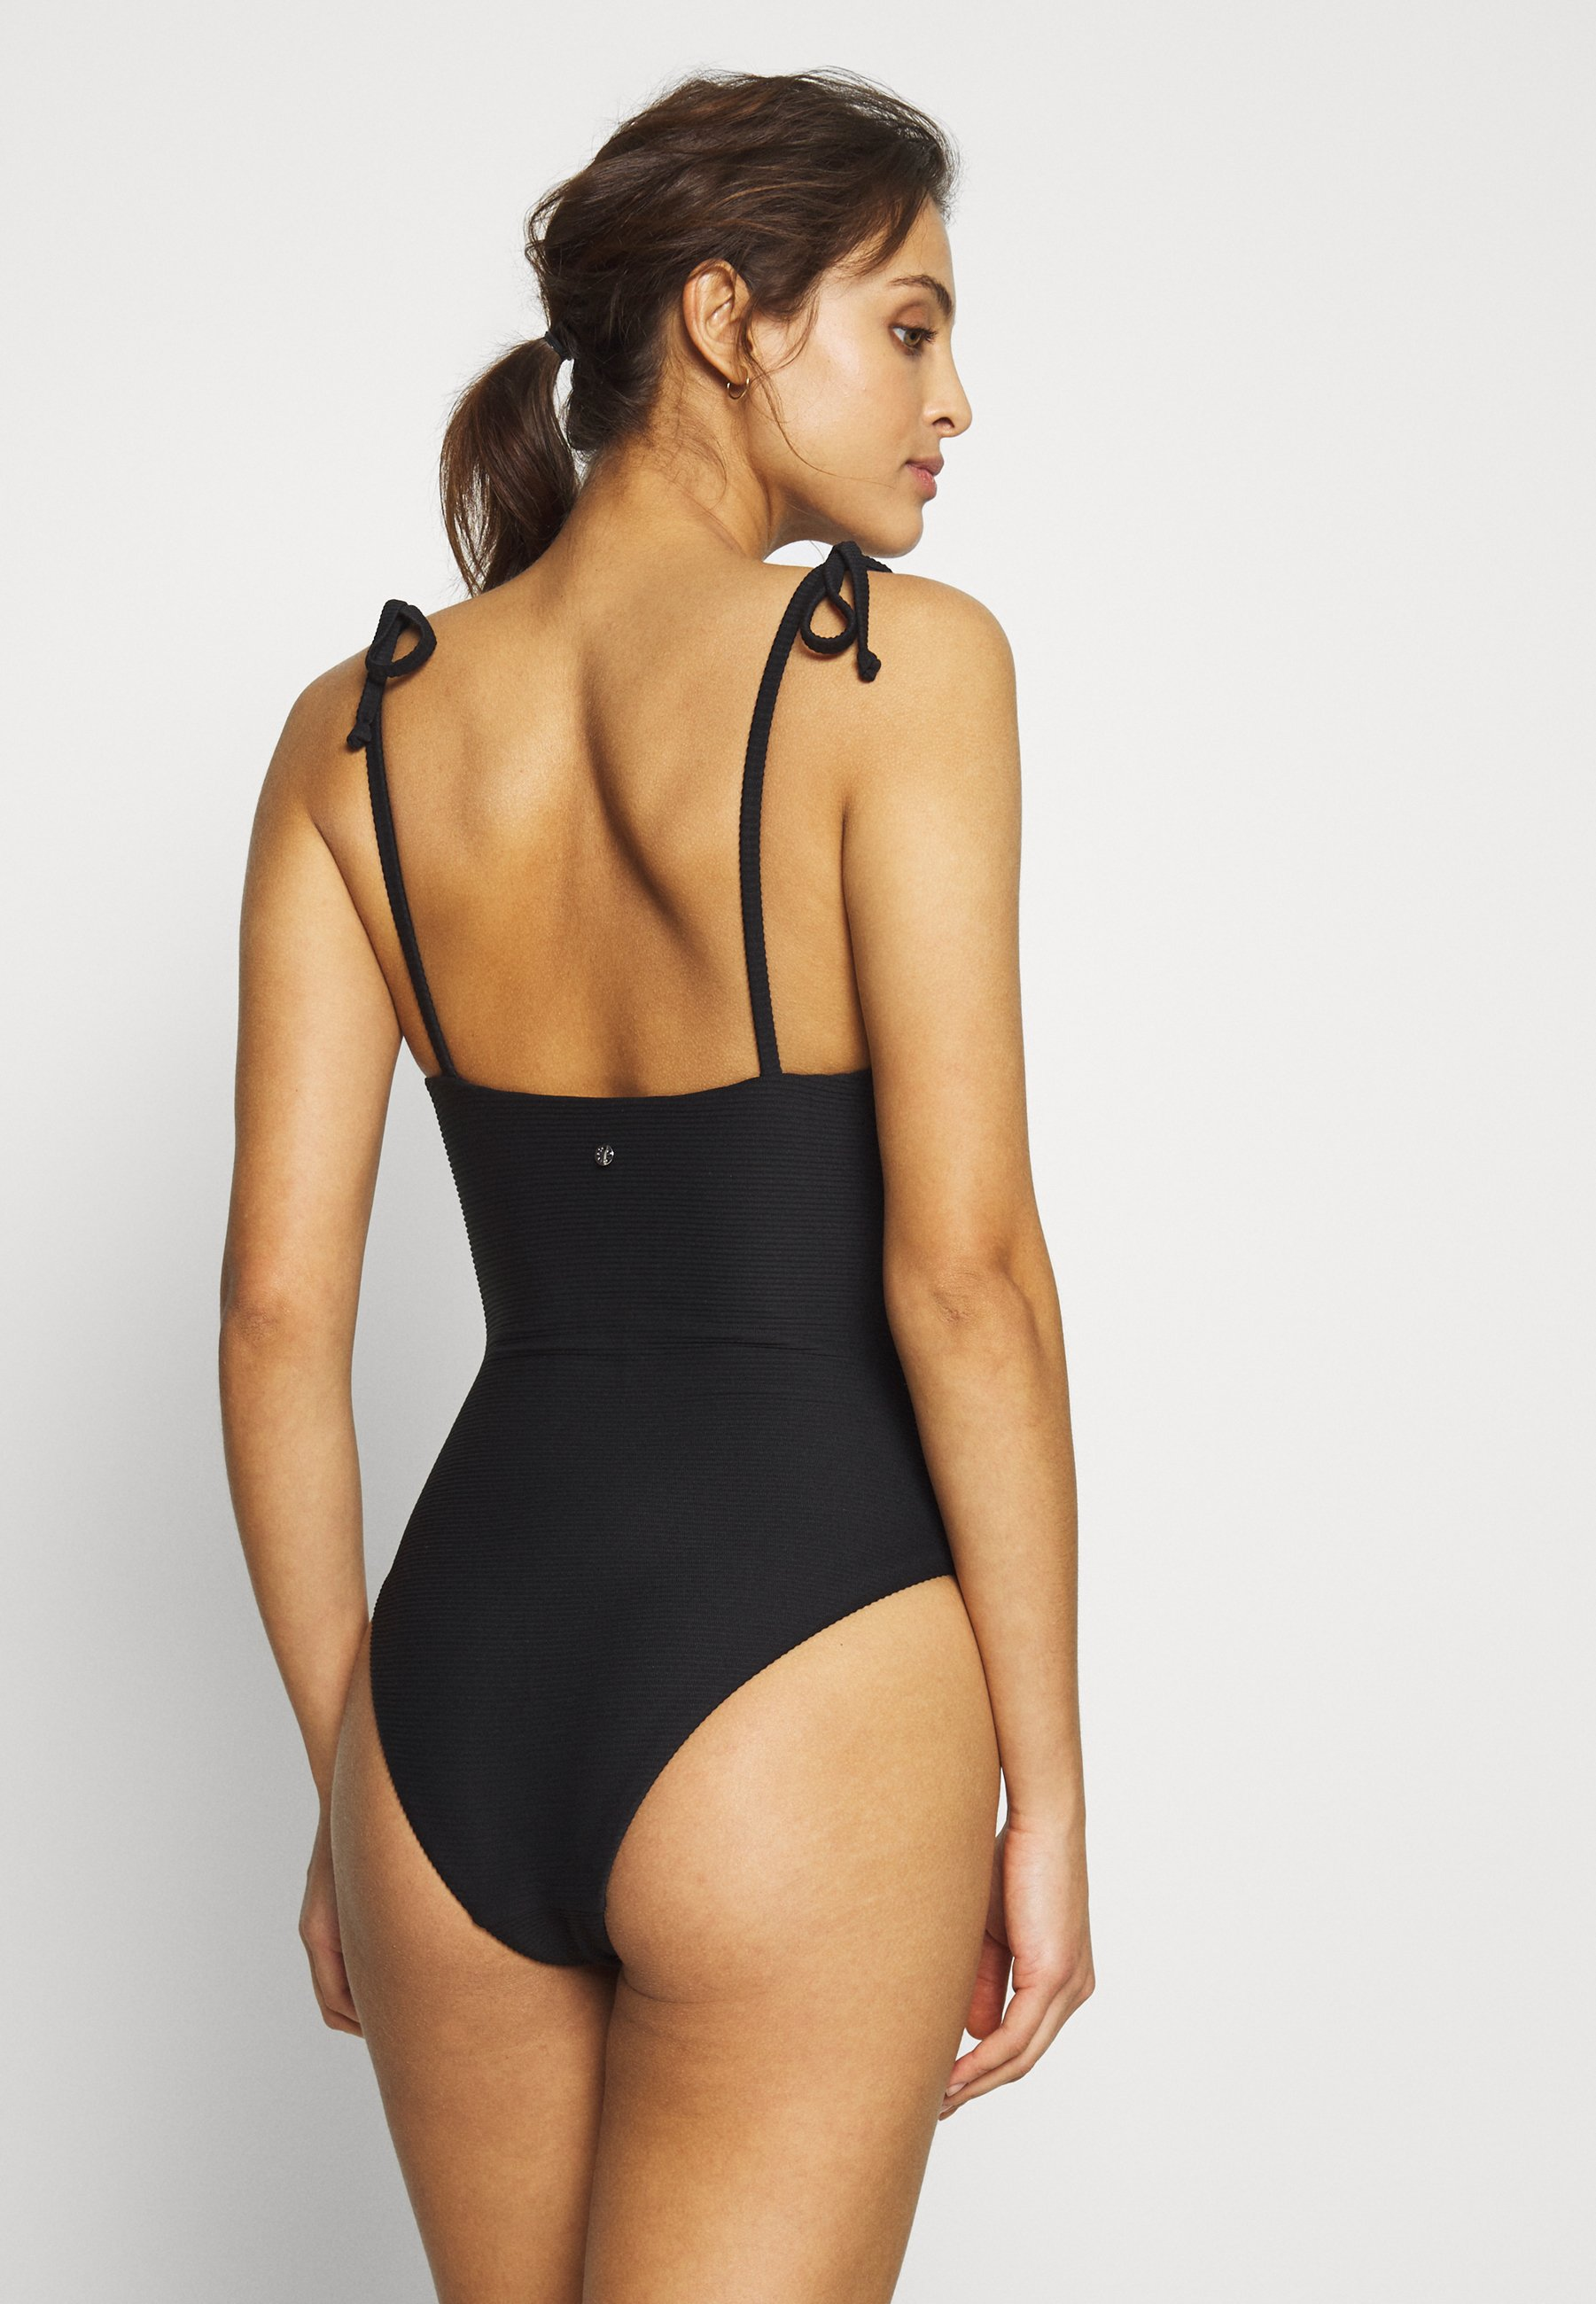 Seafolly Essentials Capsule One Piece Option - Swimsuit Black